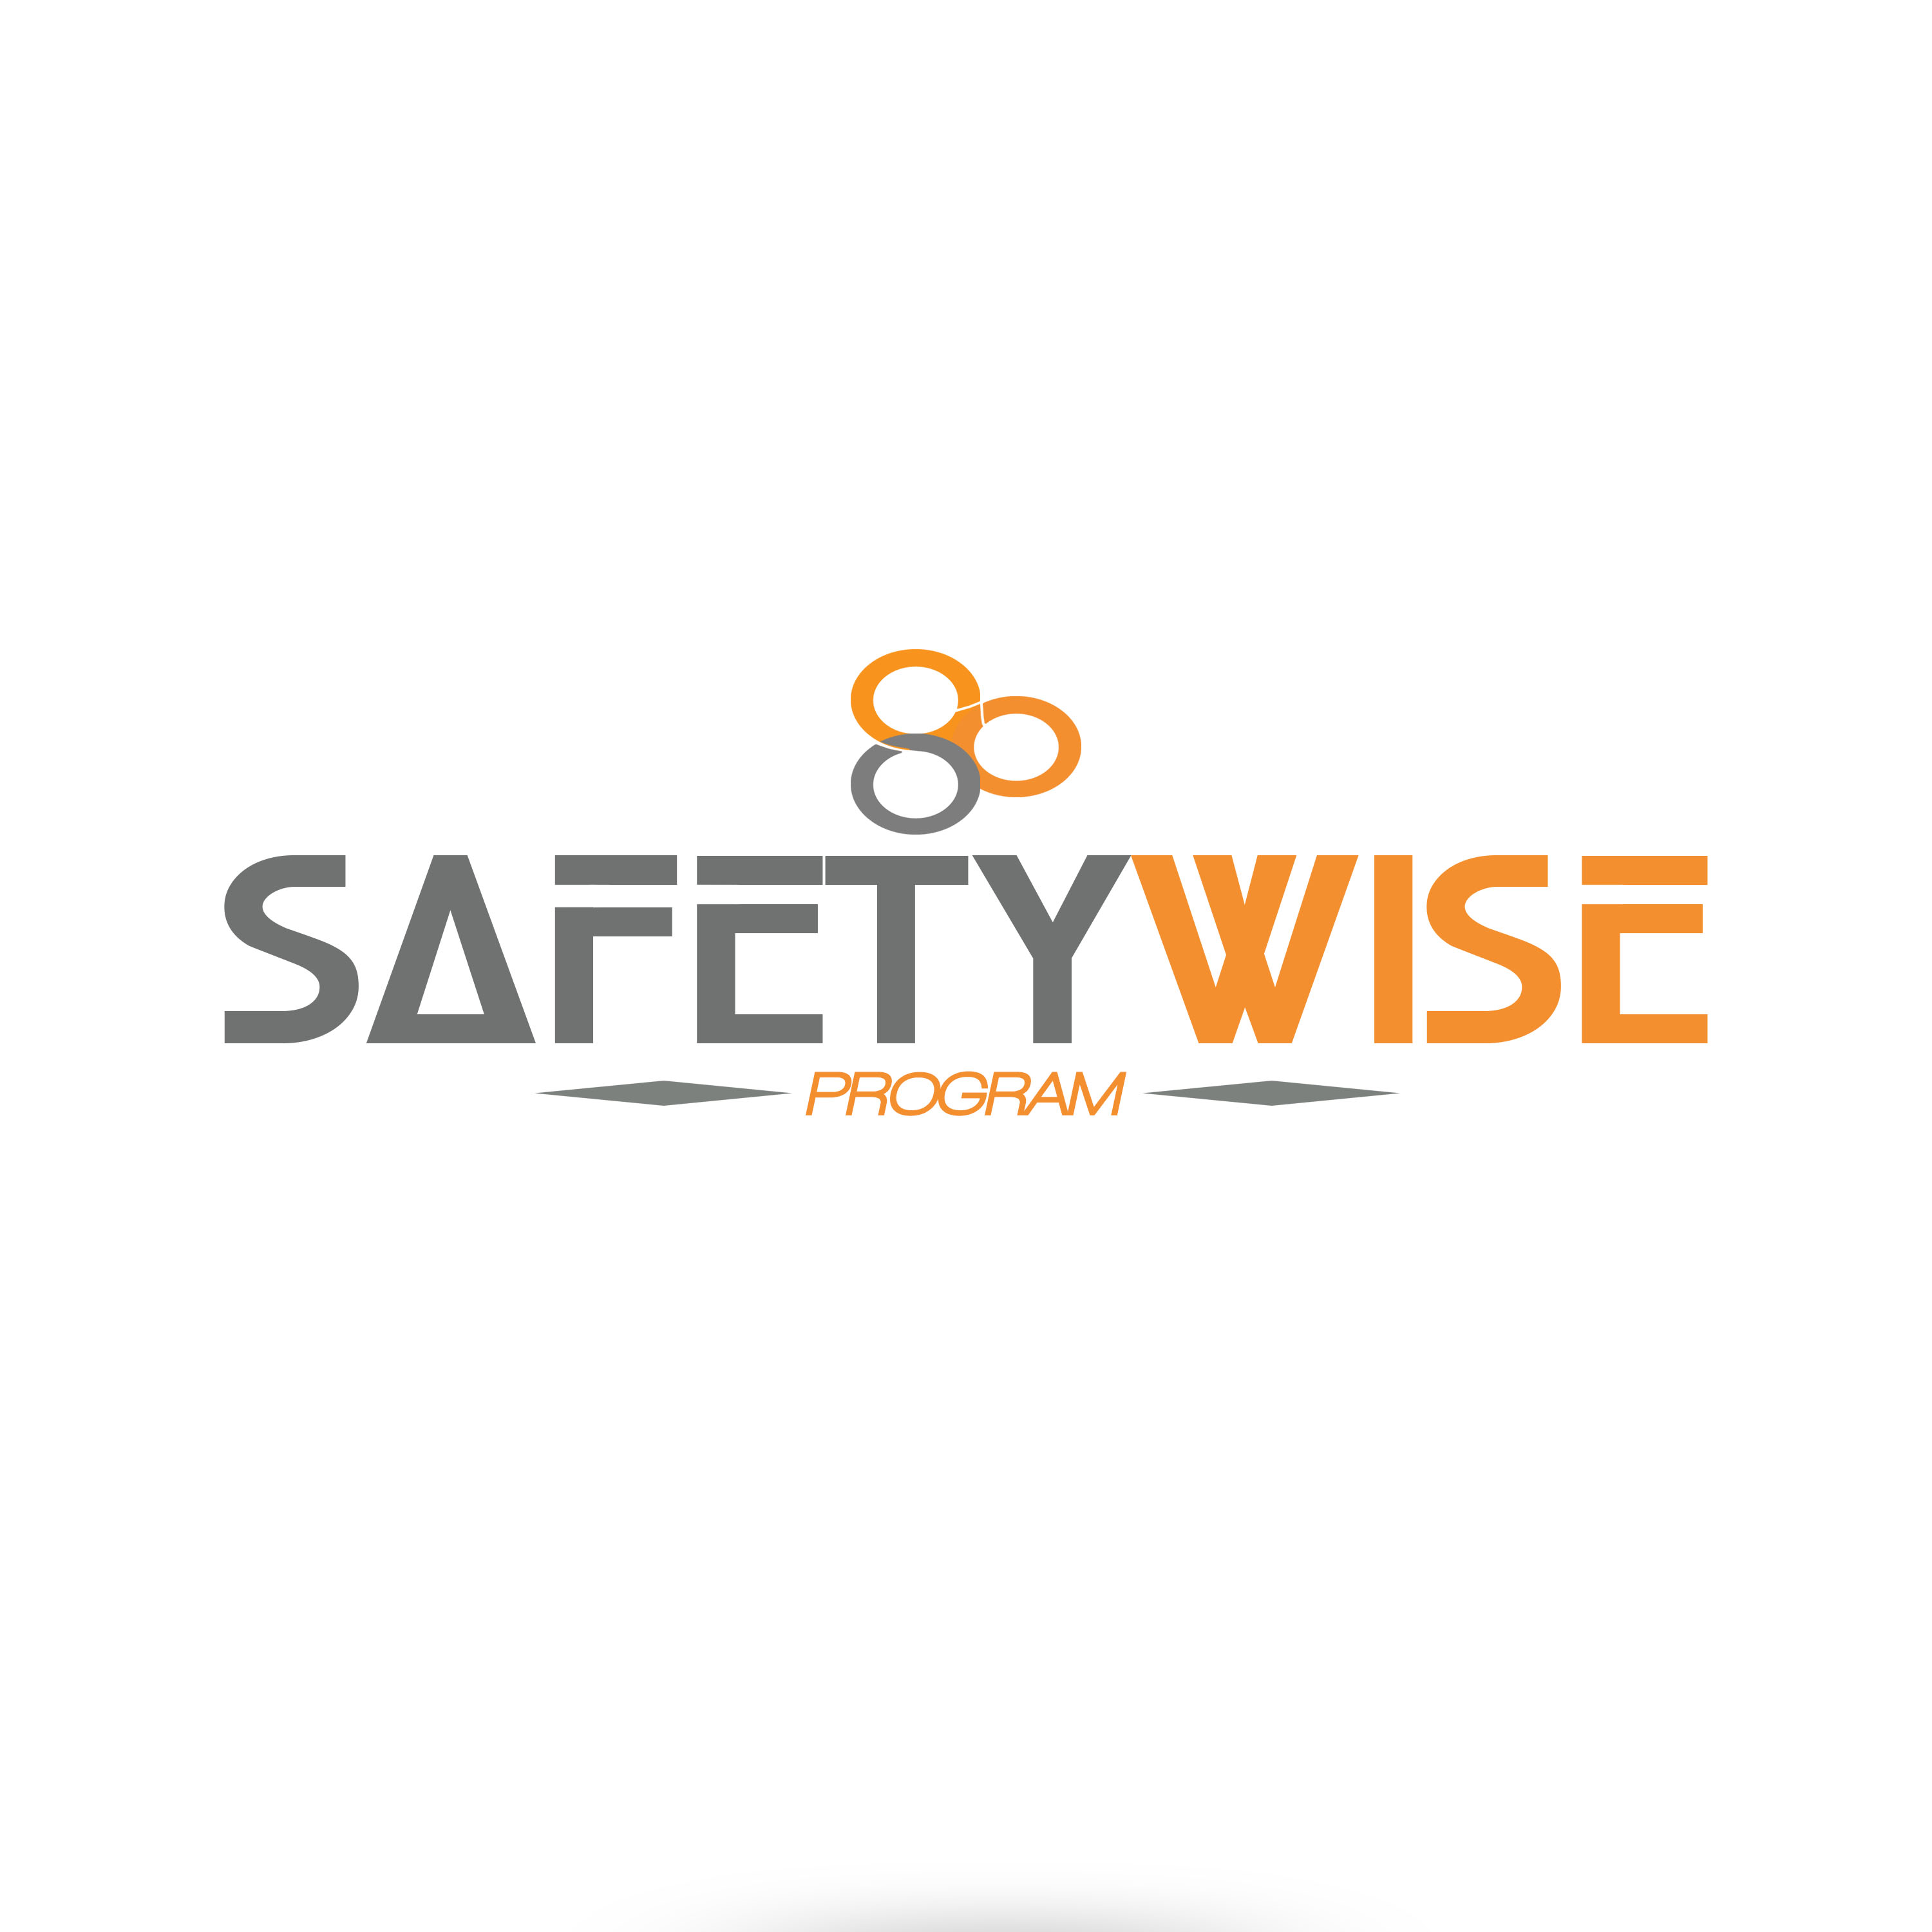 Logo Design by Private User - Entry No. 206 in the Logo Design Contest New Logo Design for Safety Wise Program.